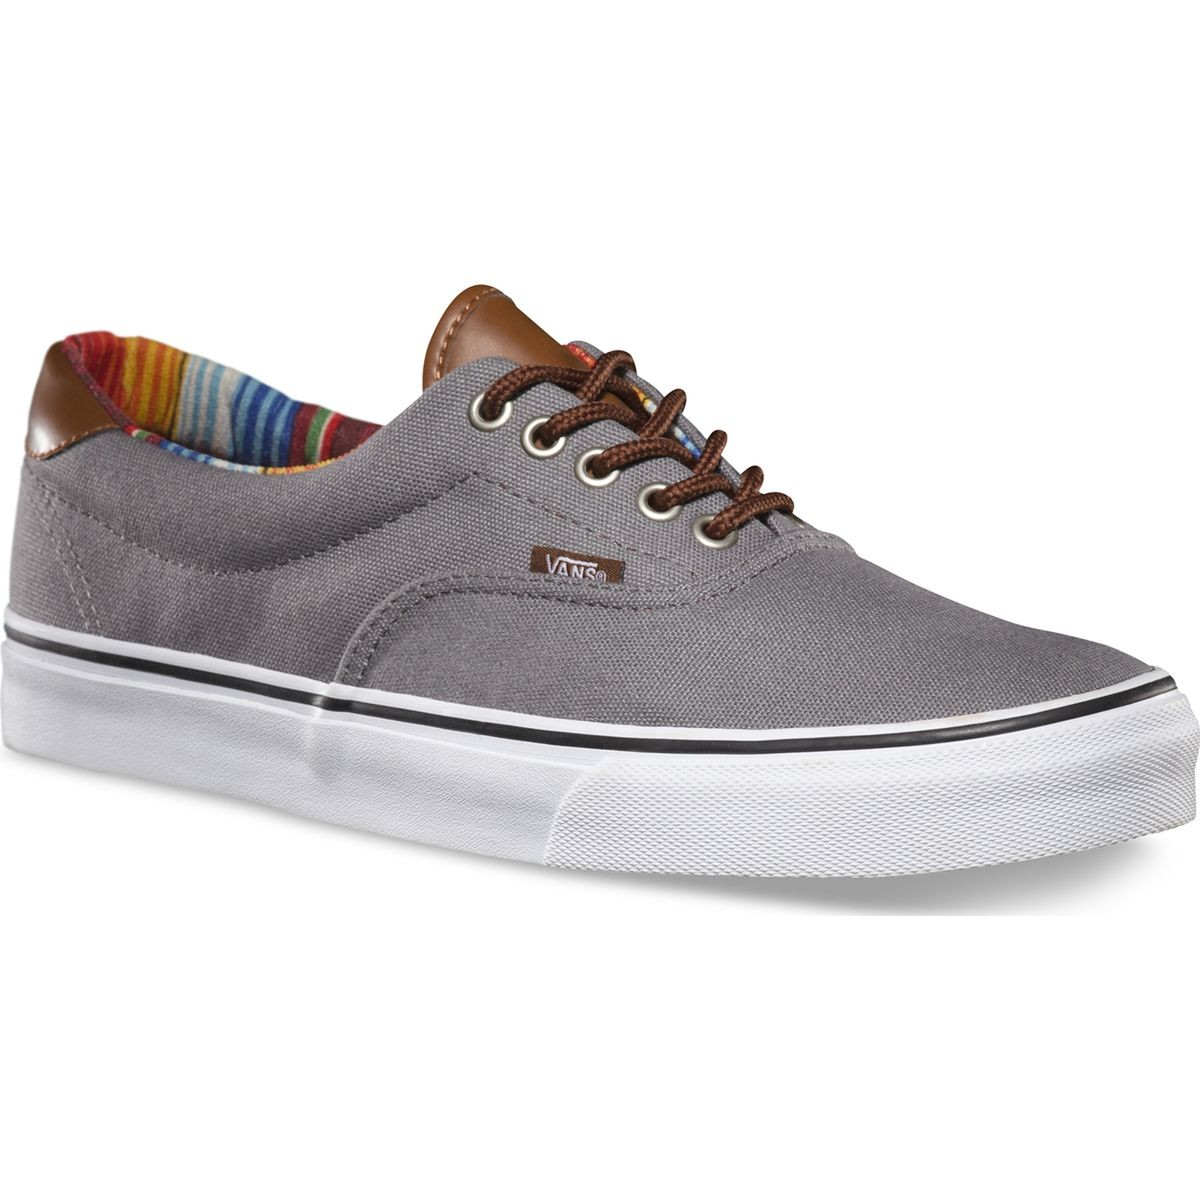 Vans C&L ERA 59 Shoes - Steel Gray / Multi Stripe